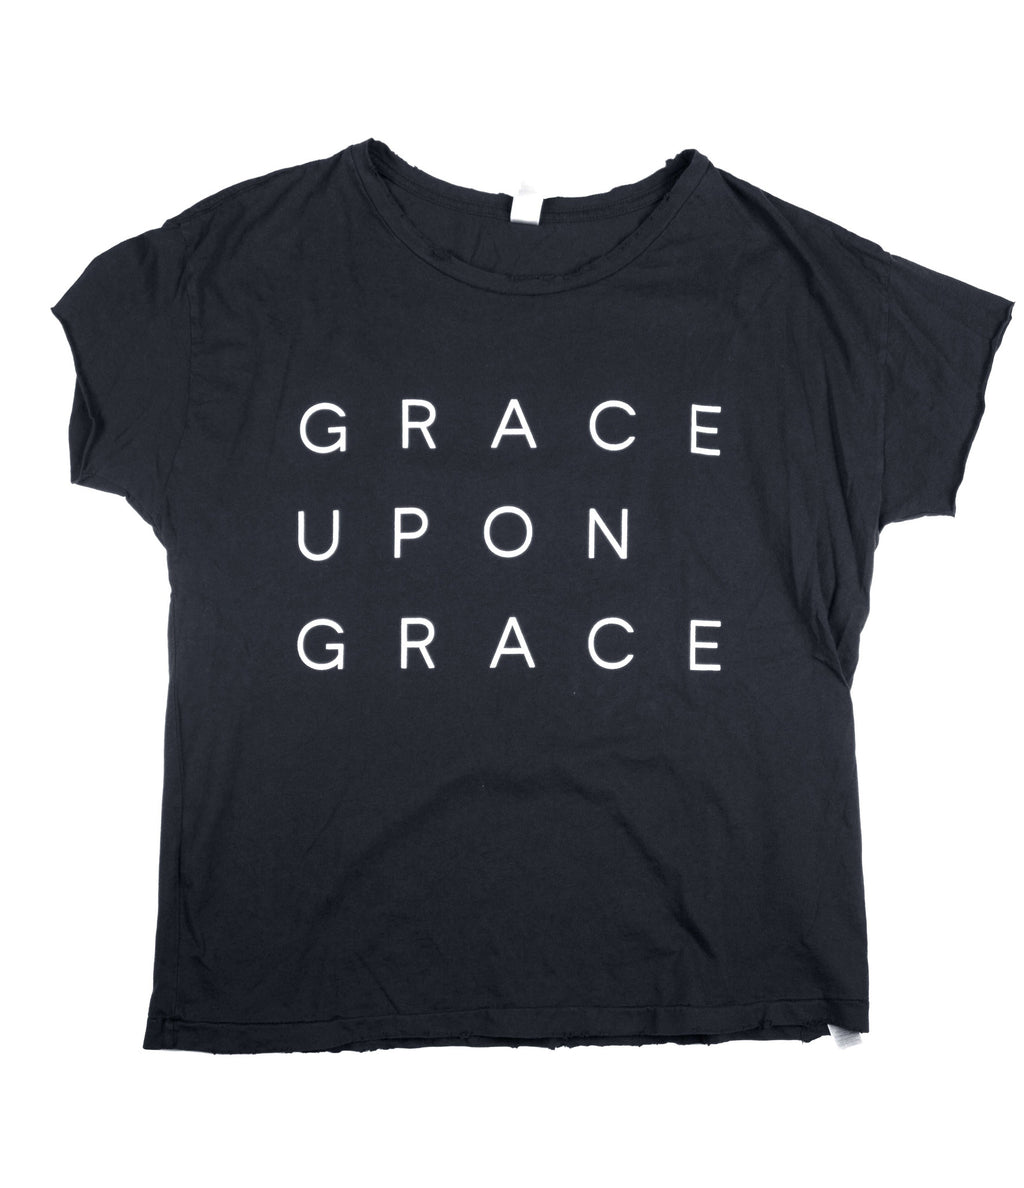 GRACE UPON GRACE BLACK DISTRESSED WOMEN'S FITTED T-SHIRT